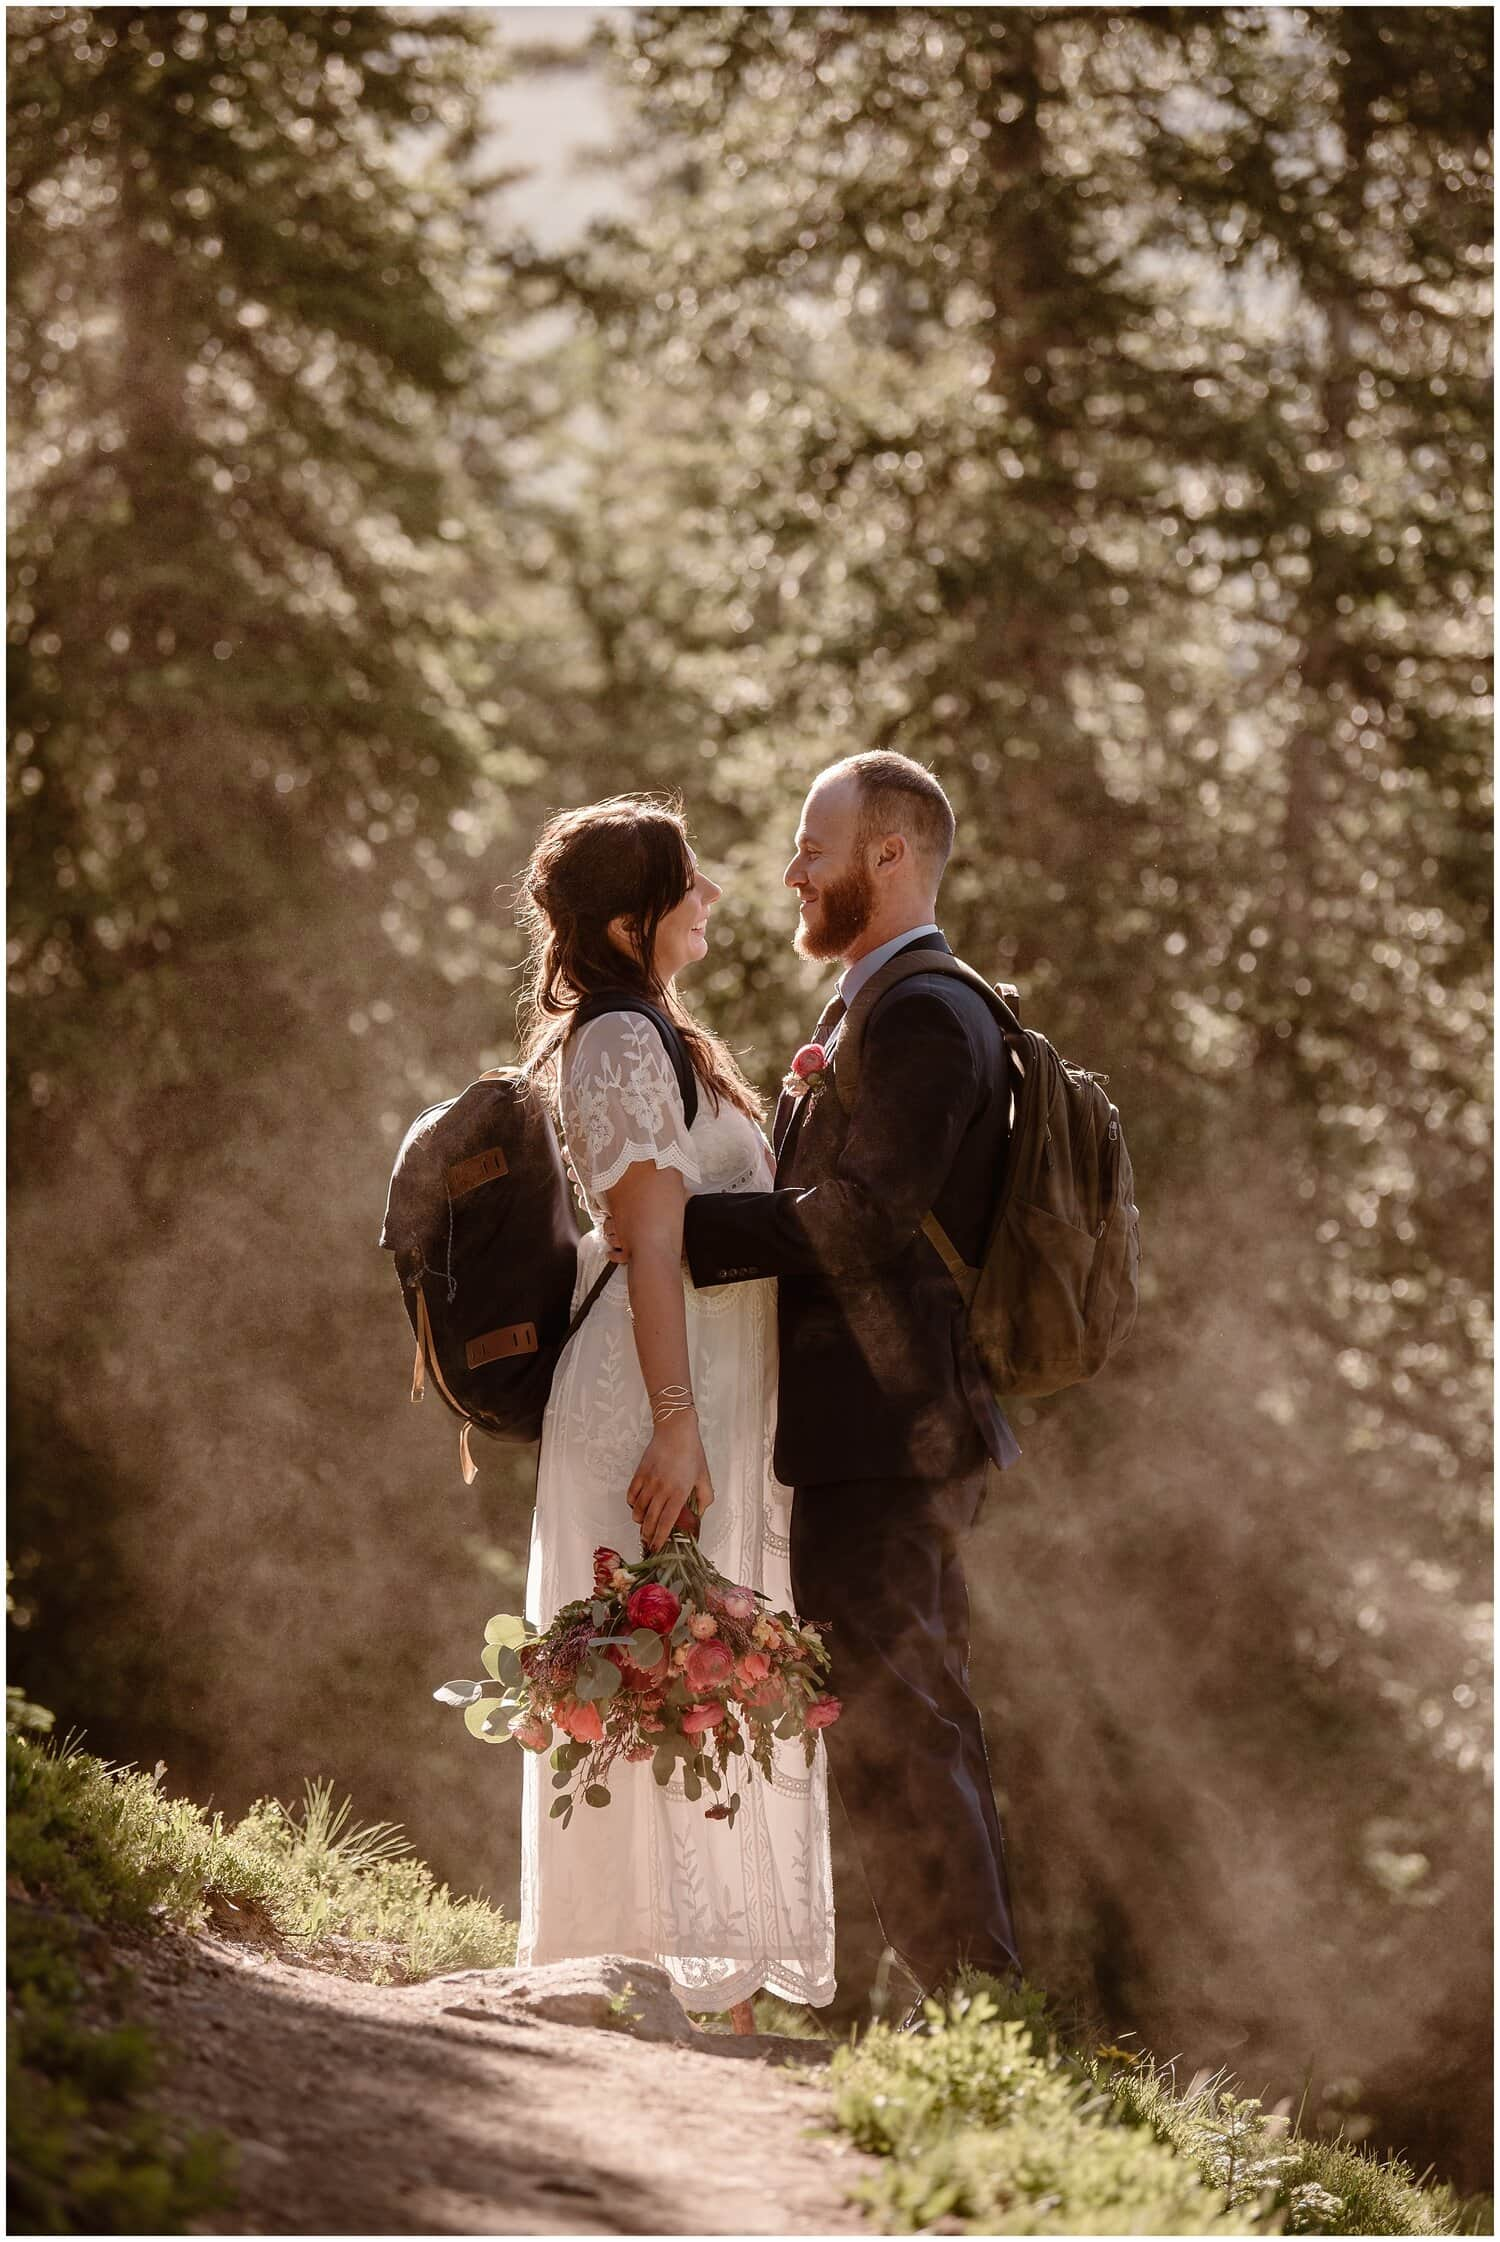 A bride and groom smile at each other while wearing backpacks in a forest. The bride carries a bouquet of flowers.